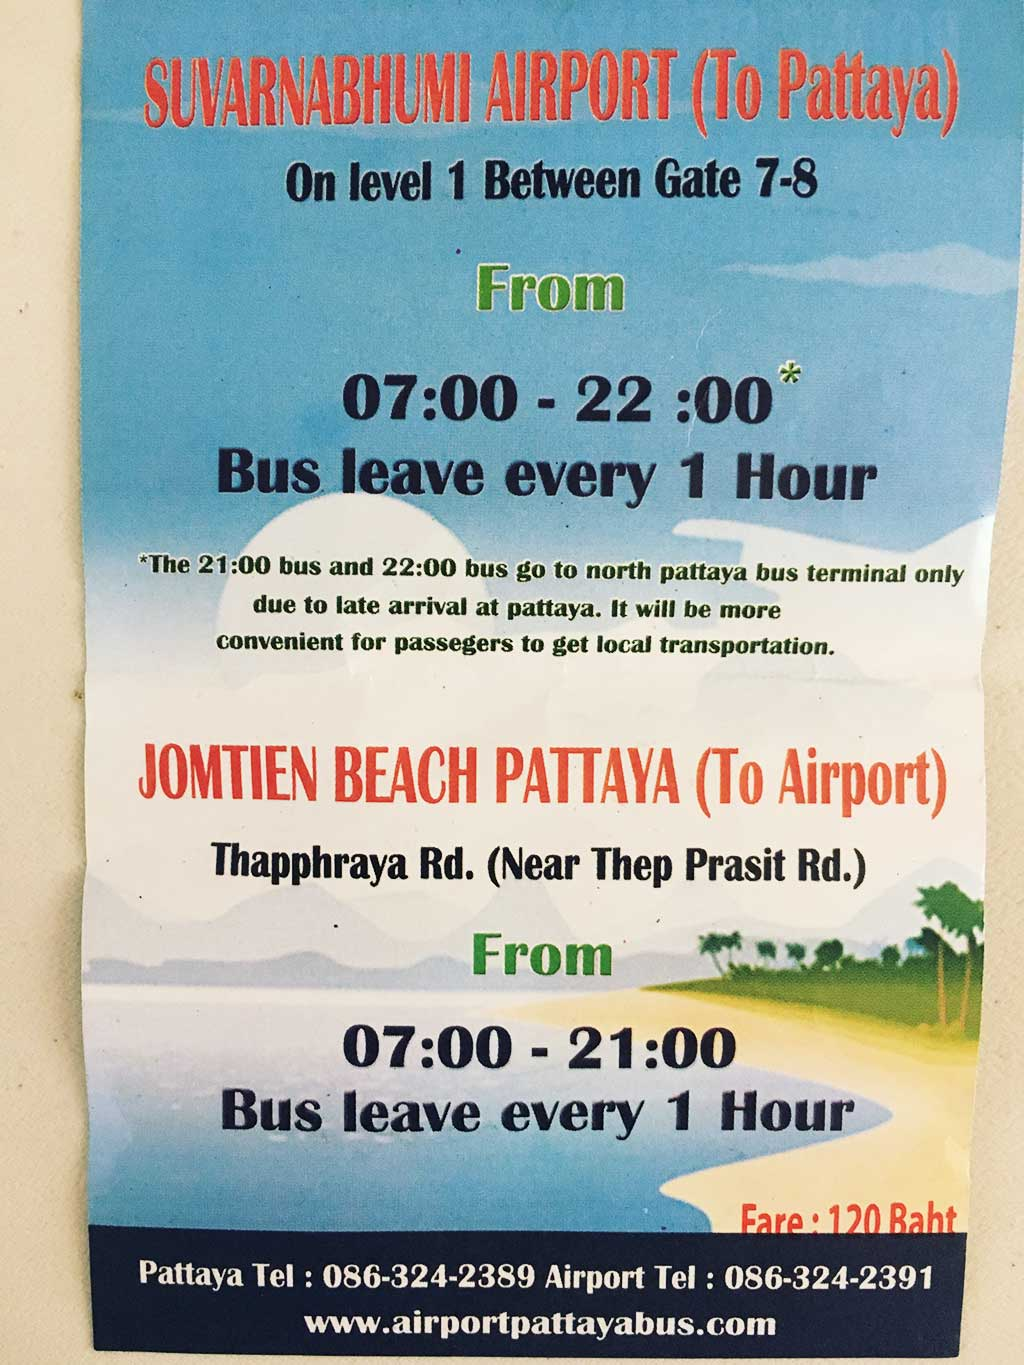 How to Get to Pattaya from Suvarnabhumi Airport for 120 Baht - Air-Conditioned-Bus - Schedule - Thailand